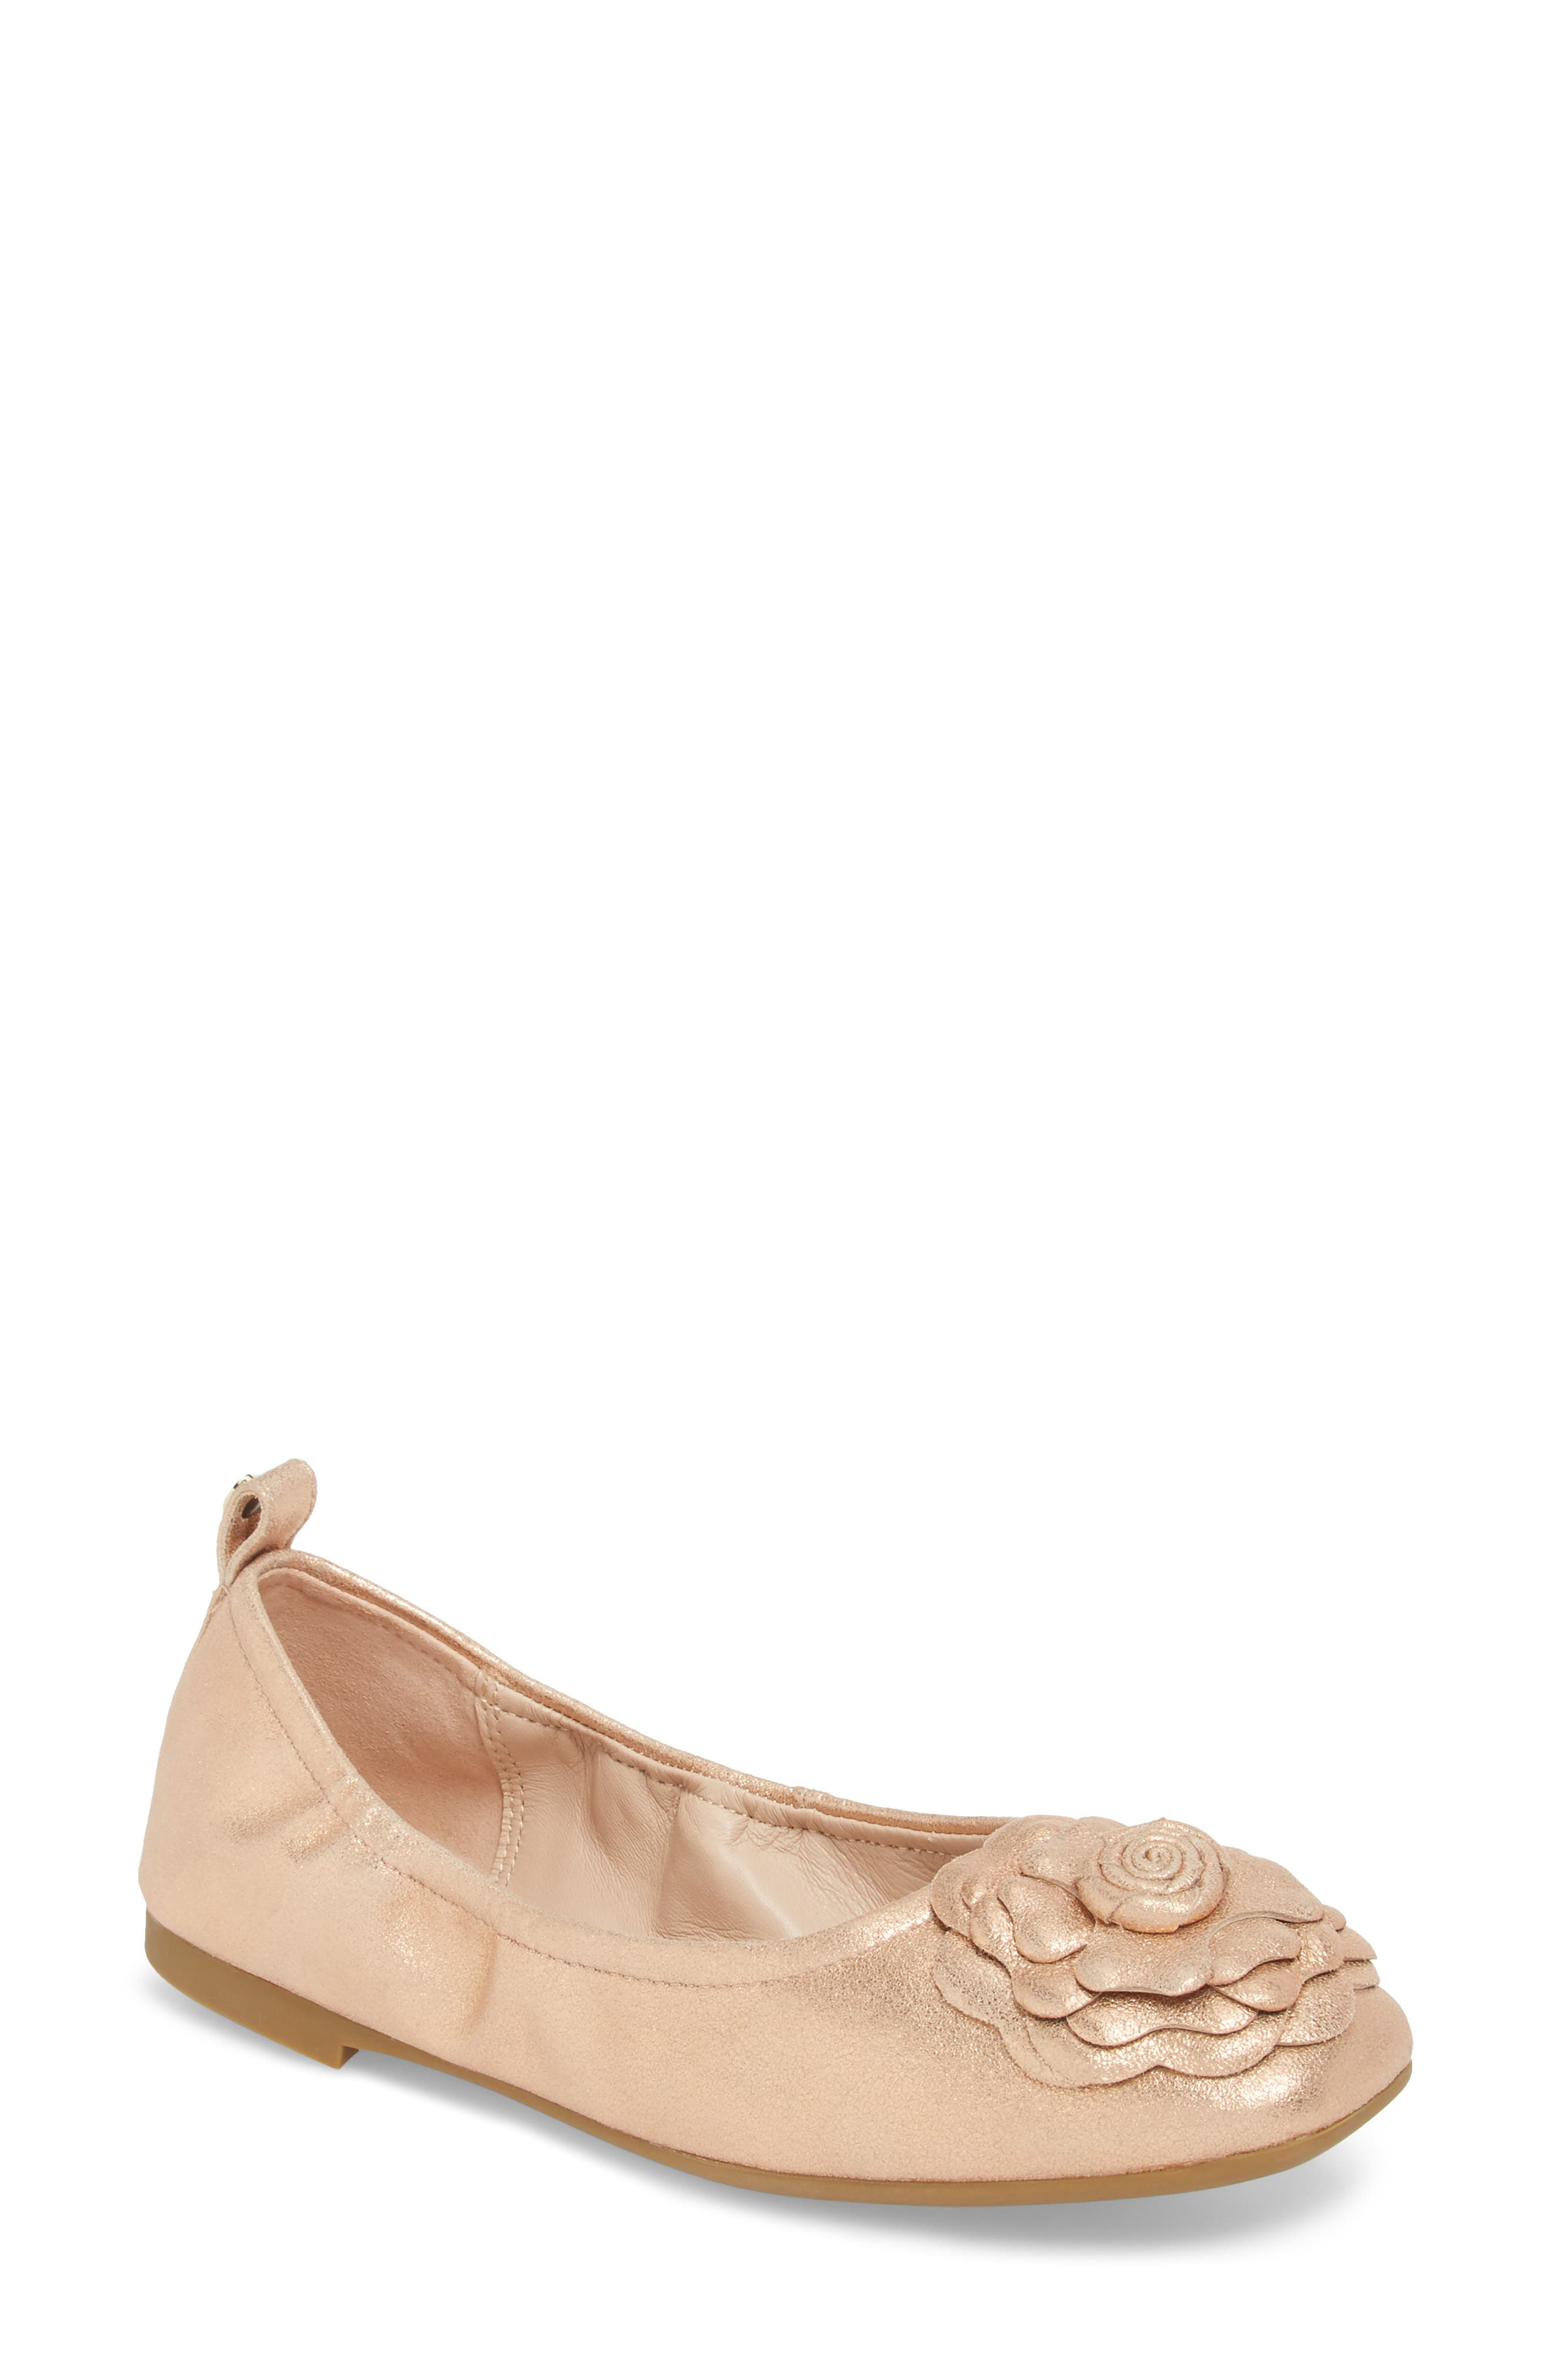 Rosalyn Ballet Flat,                             Main thumbnail 1, color,                             ROSE GOLD LEATHER